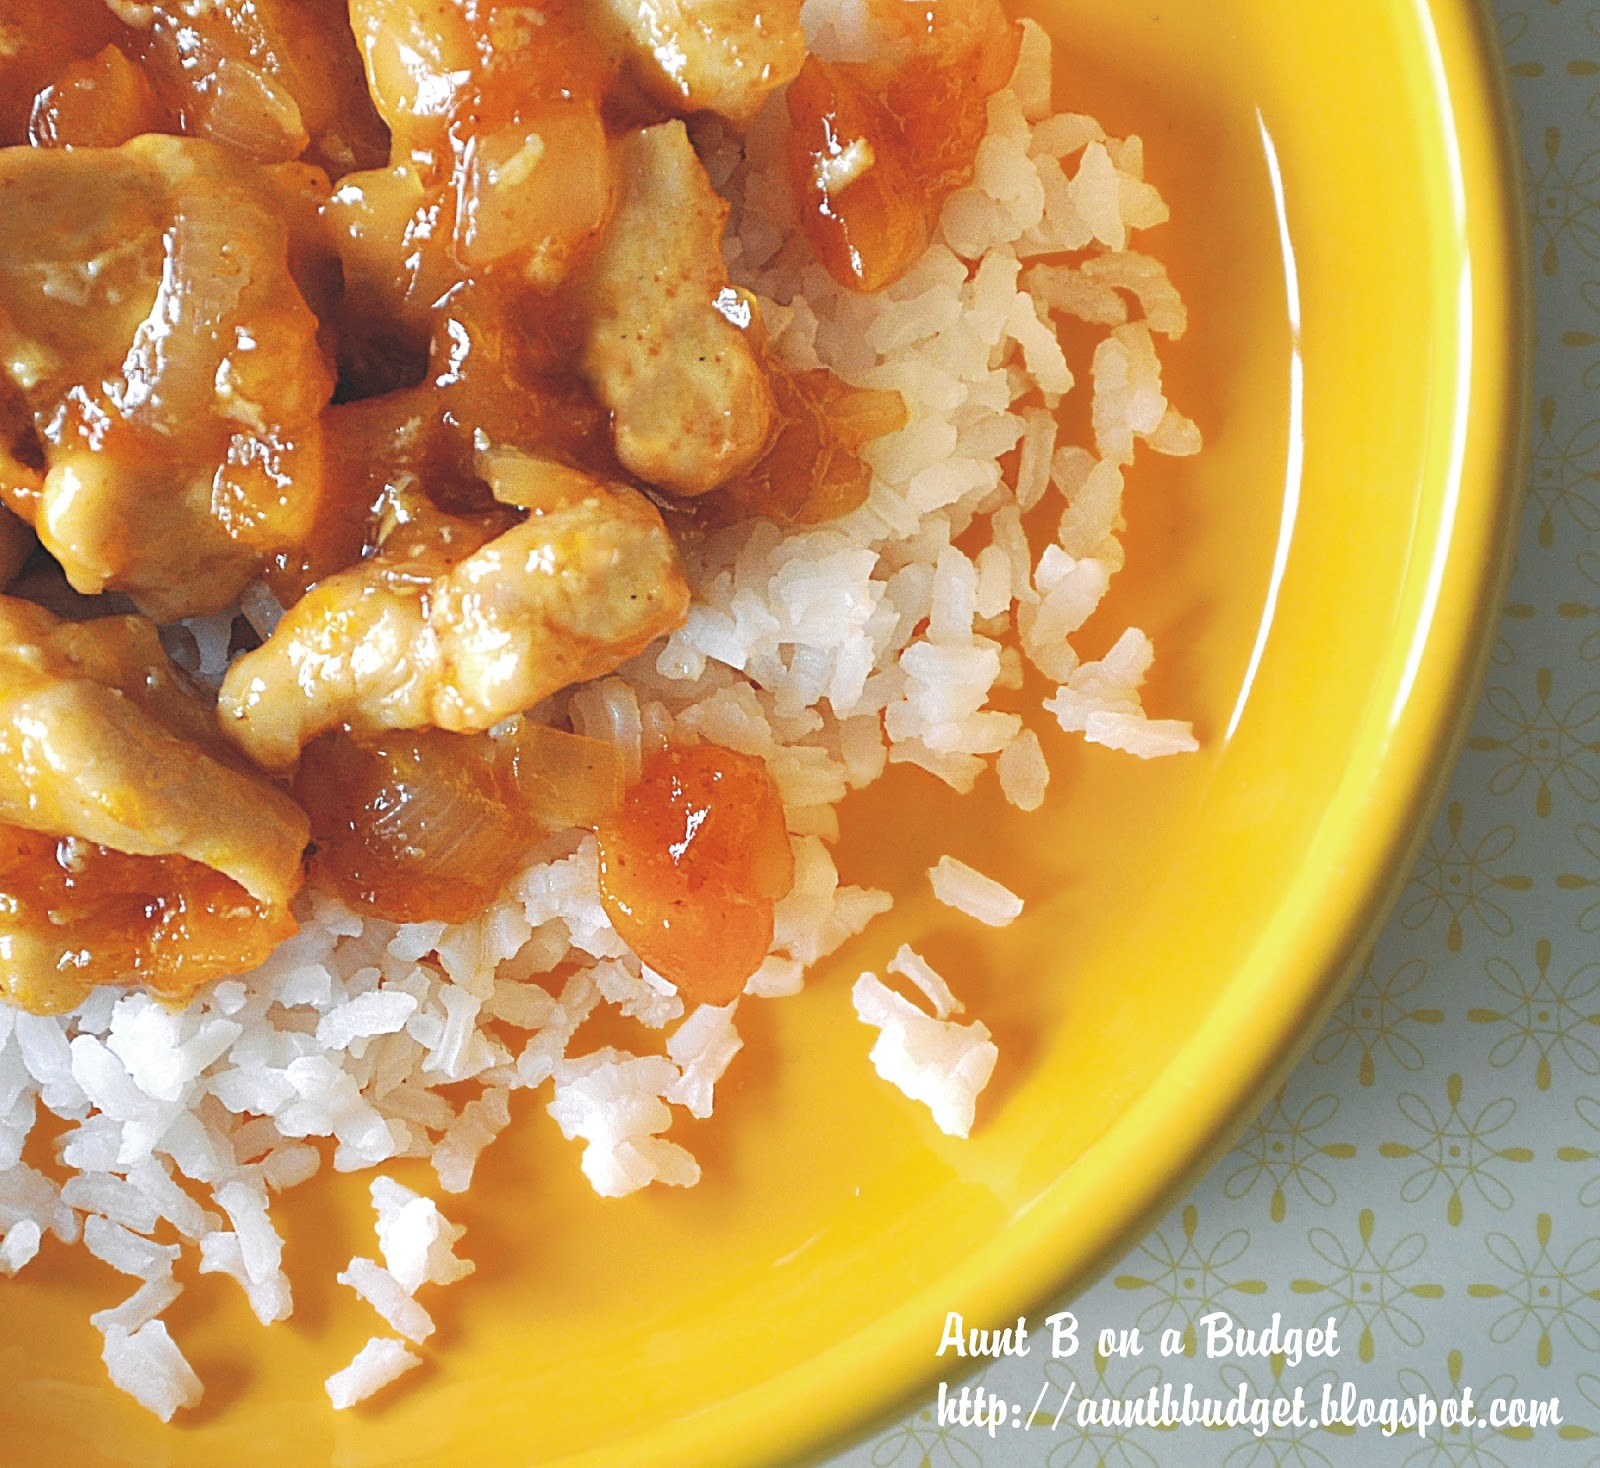 Aunt B on a Budget: Apricot Chicken